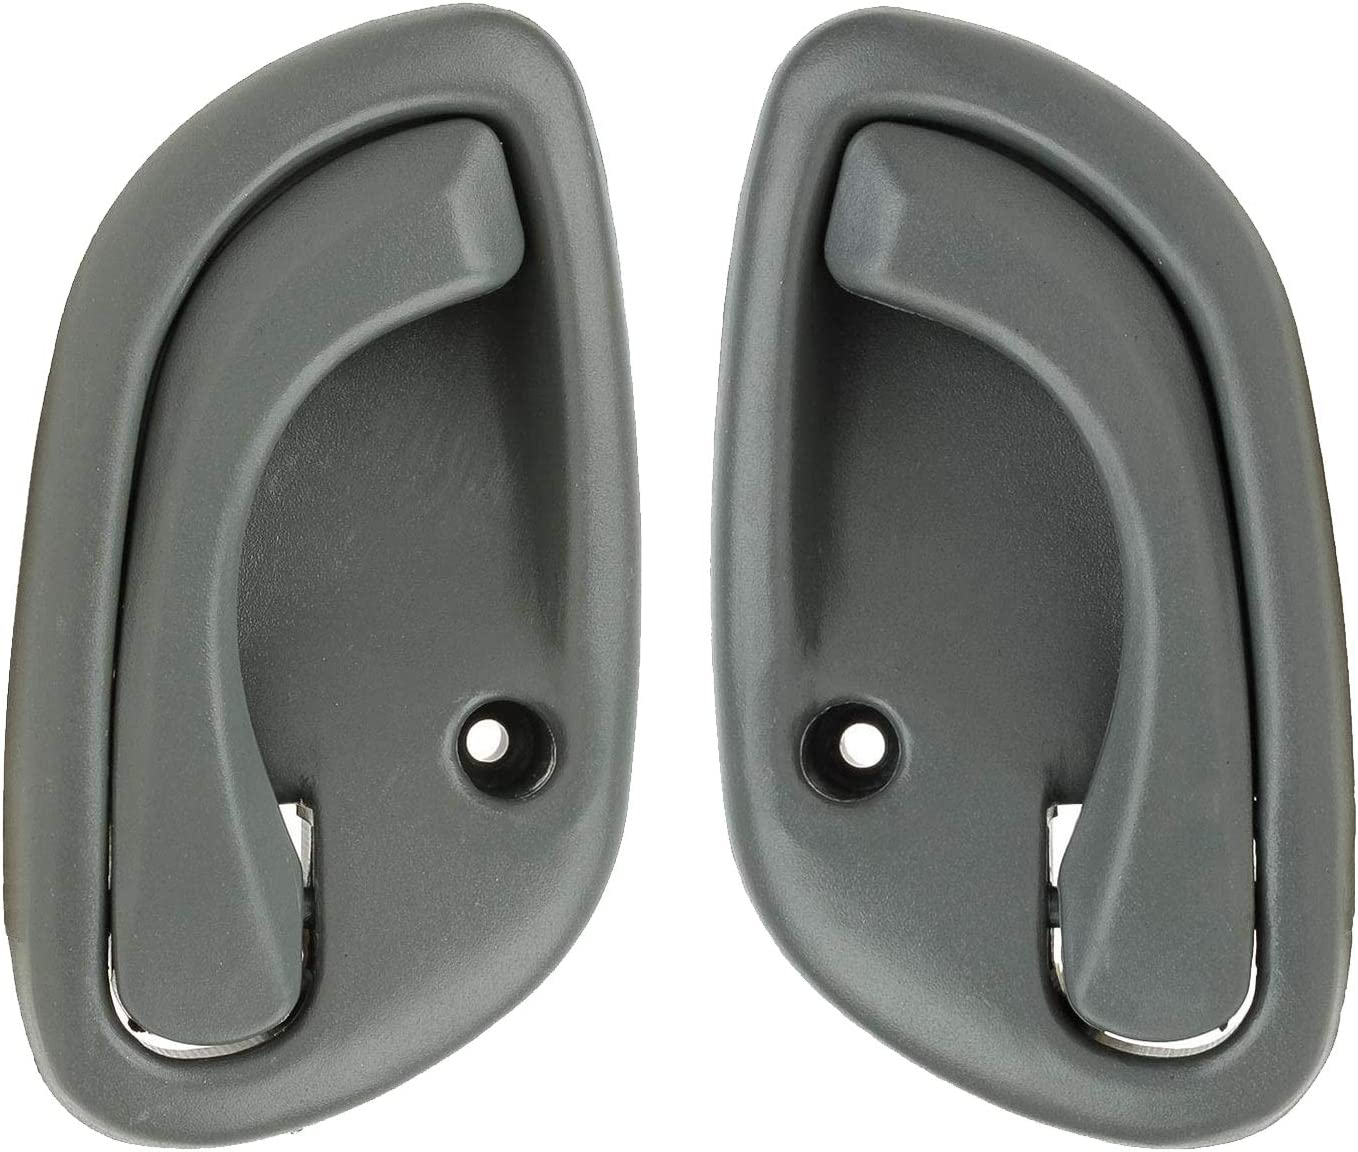 Set of 2 Gray Inside Door Handle for 99-05 Tracker Grand Vitara Esteem LH /& RH